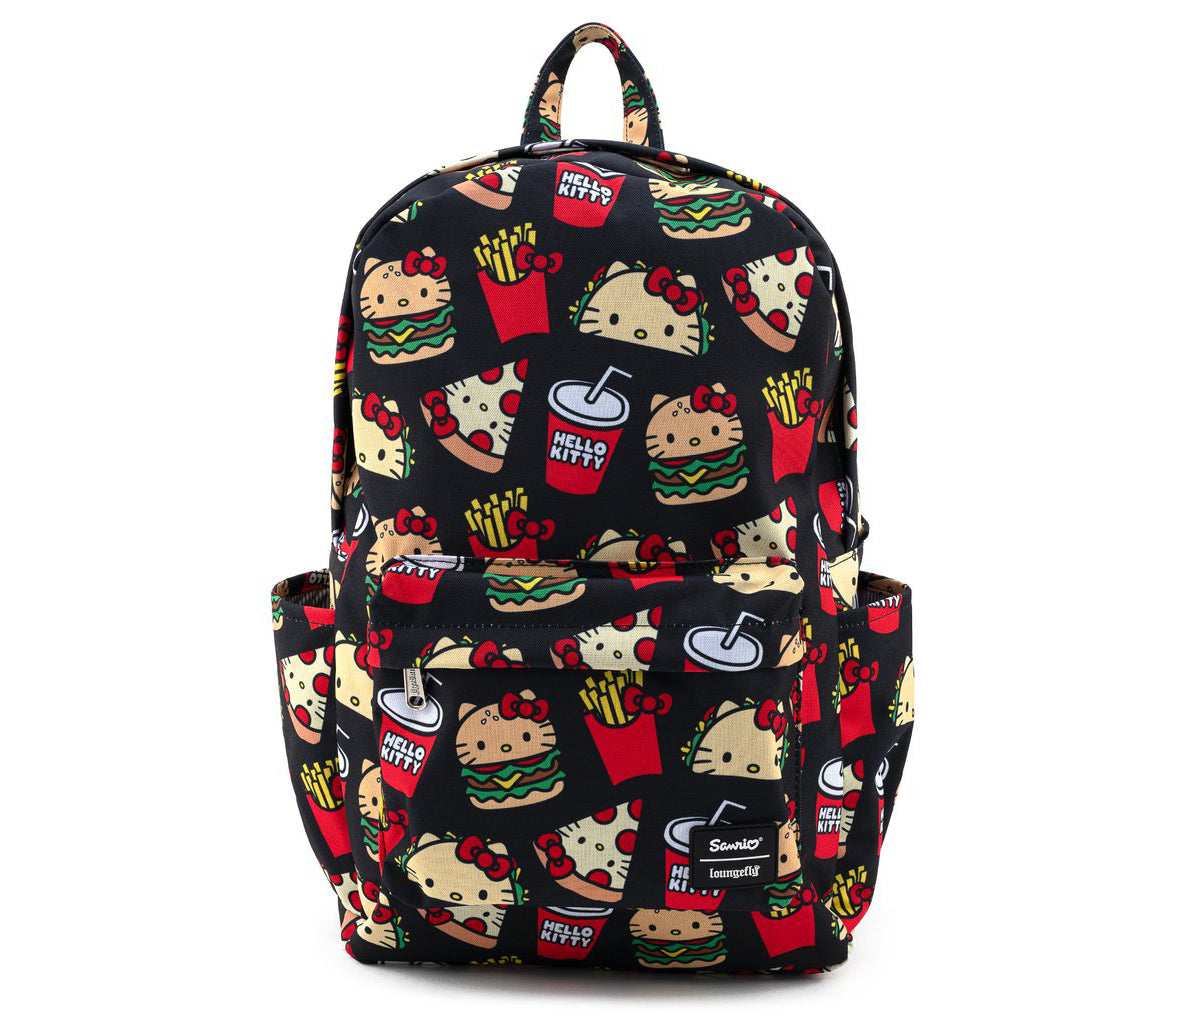 Loungefly x Hello Kitty Snacks Print Backpack